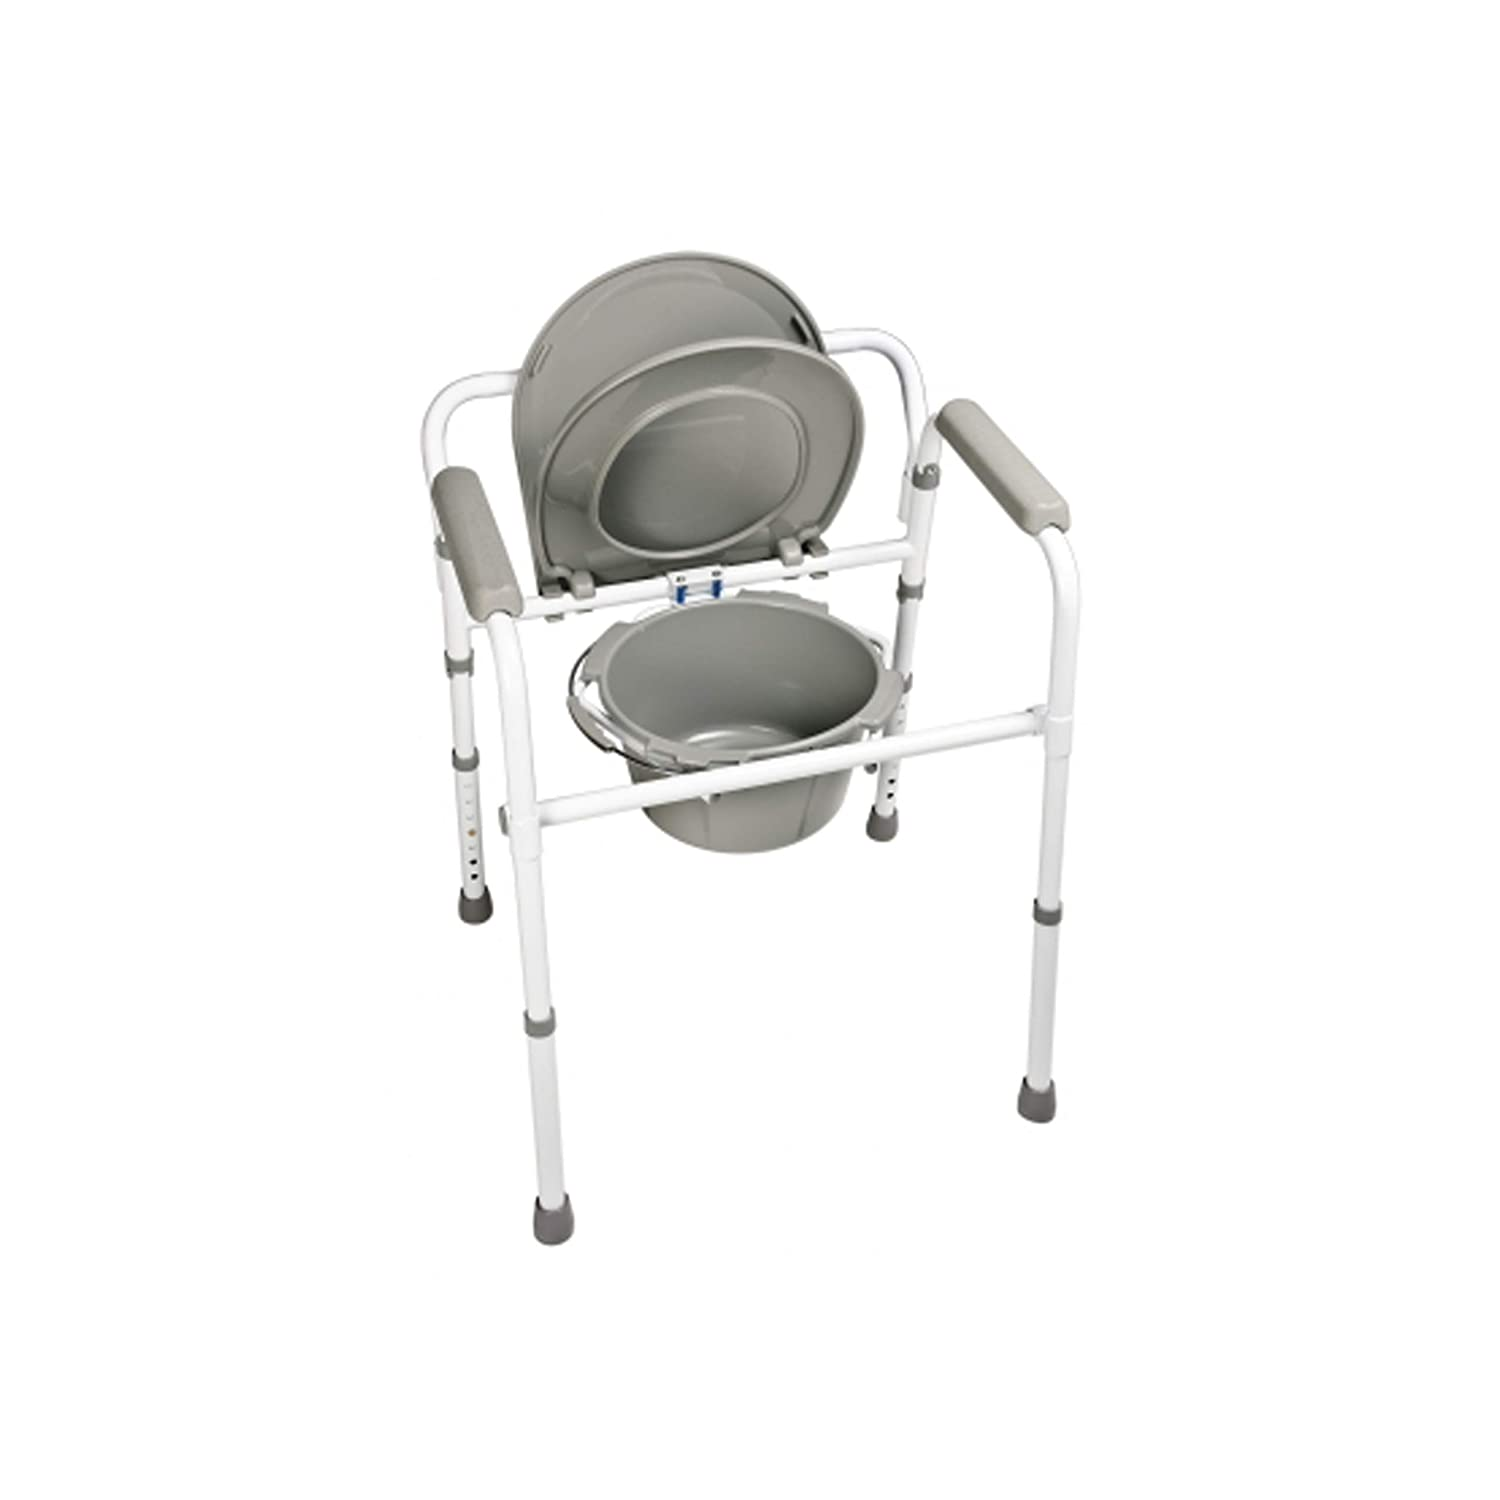 Graham-Field Lumex 3-in-1 Folding Bedside Commode, Raised Toilet Seat, or Toilet Safety Rail, 300 lb. Weight Capacity, 7108R-1